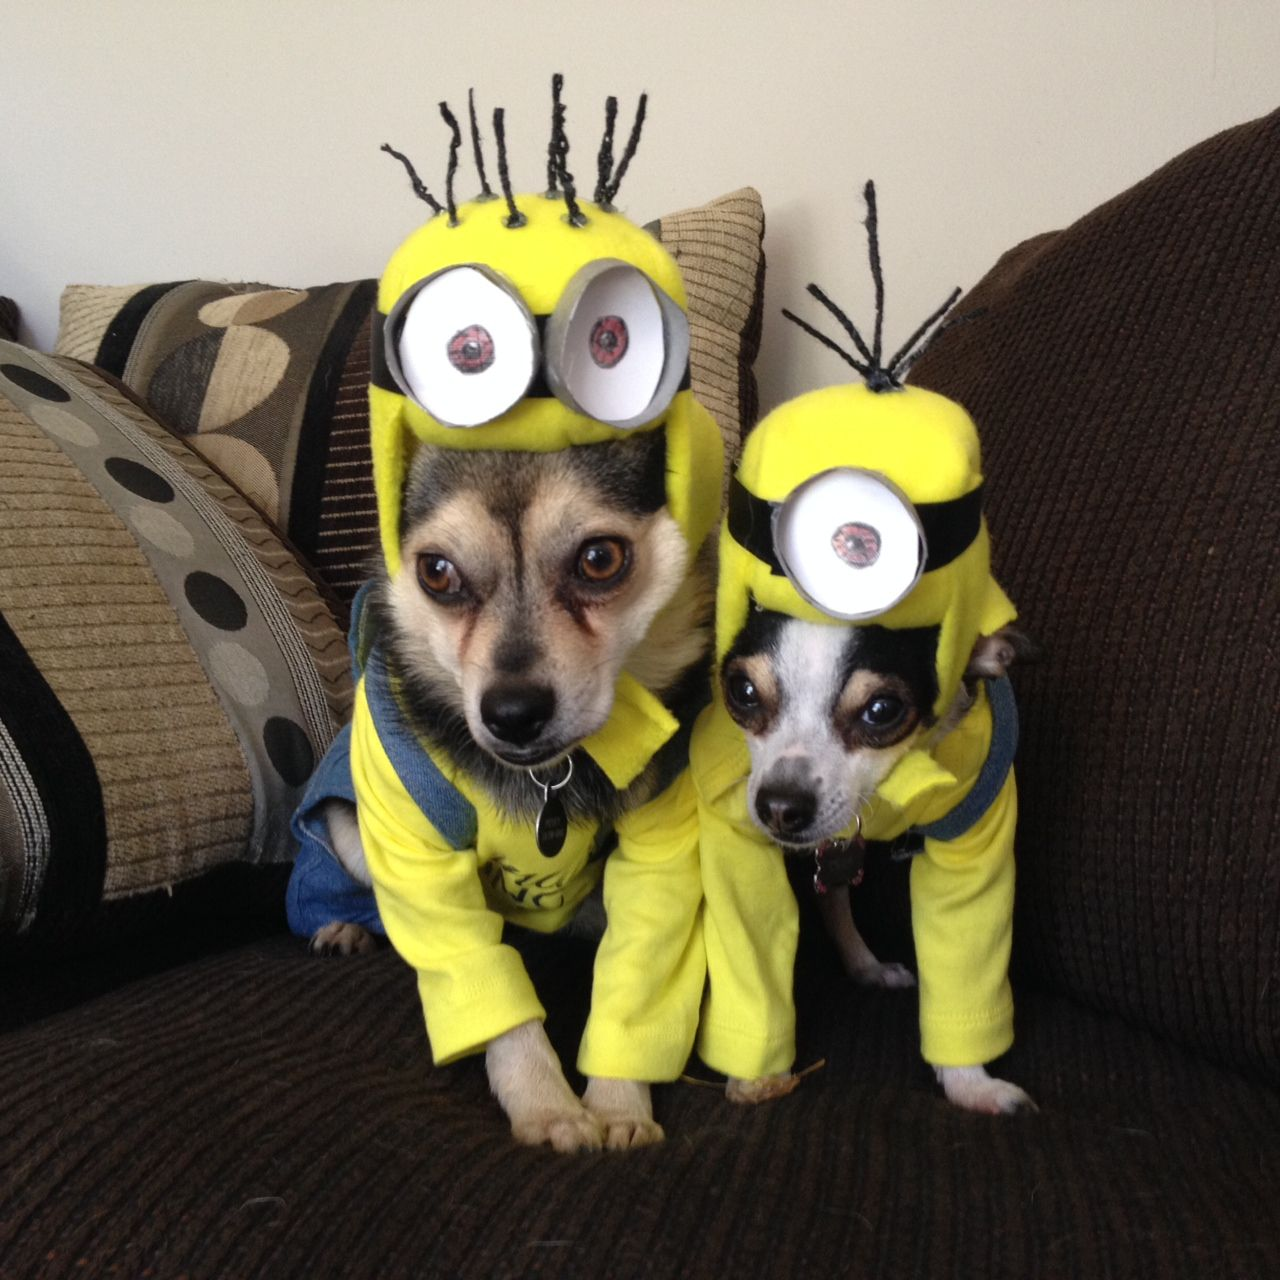 This is so cute Dogs Minion Halloween costumes I love dogs